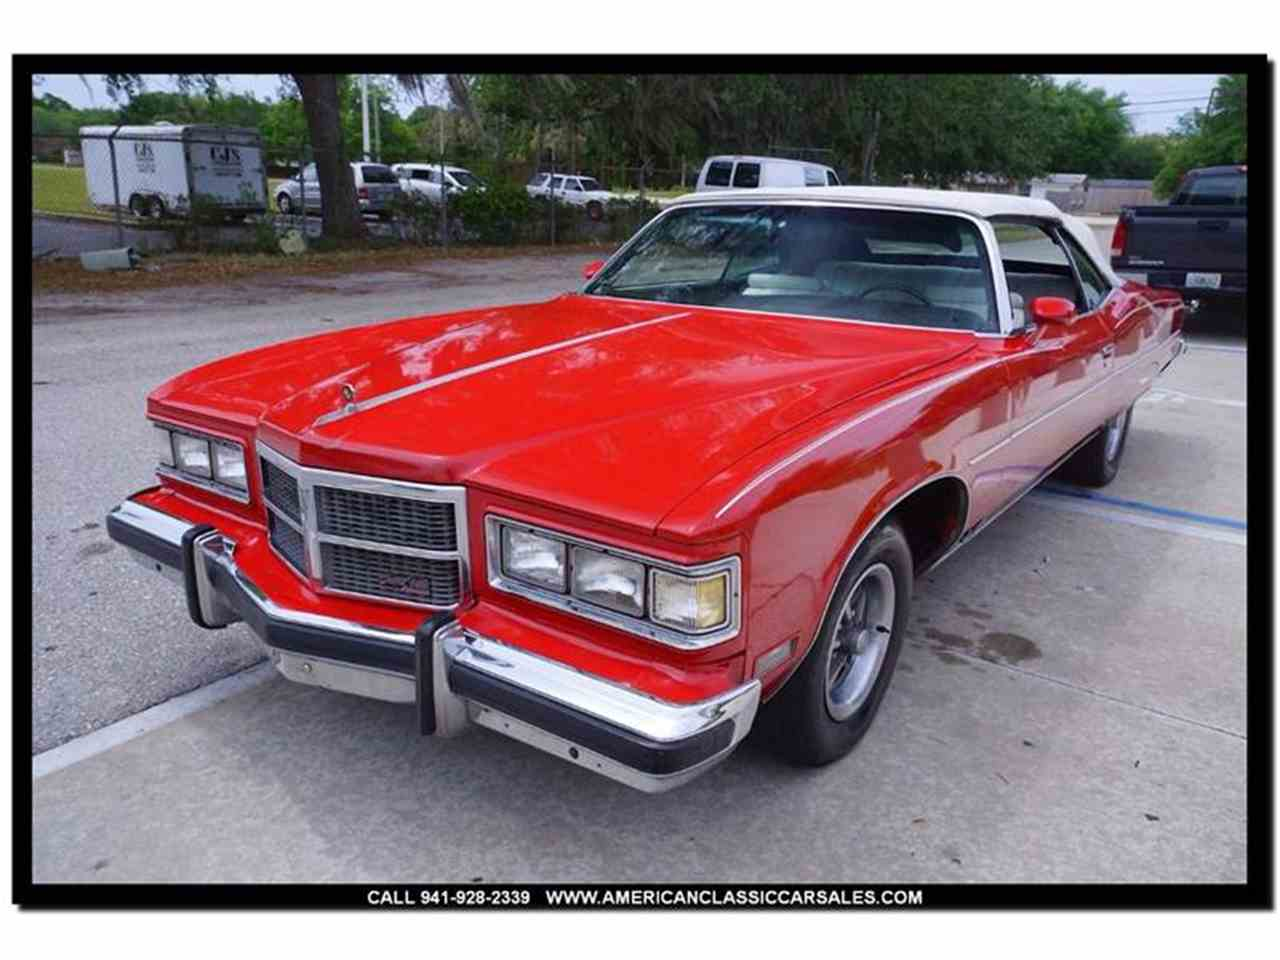 Tampa Bay Cars Trucks By Owner Craigslist Autos Post